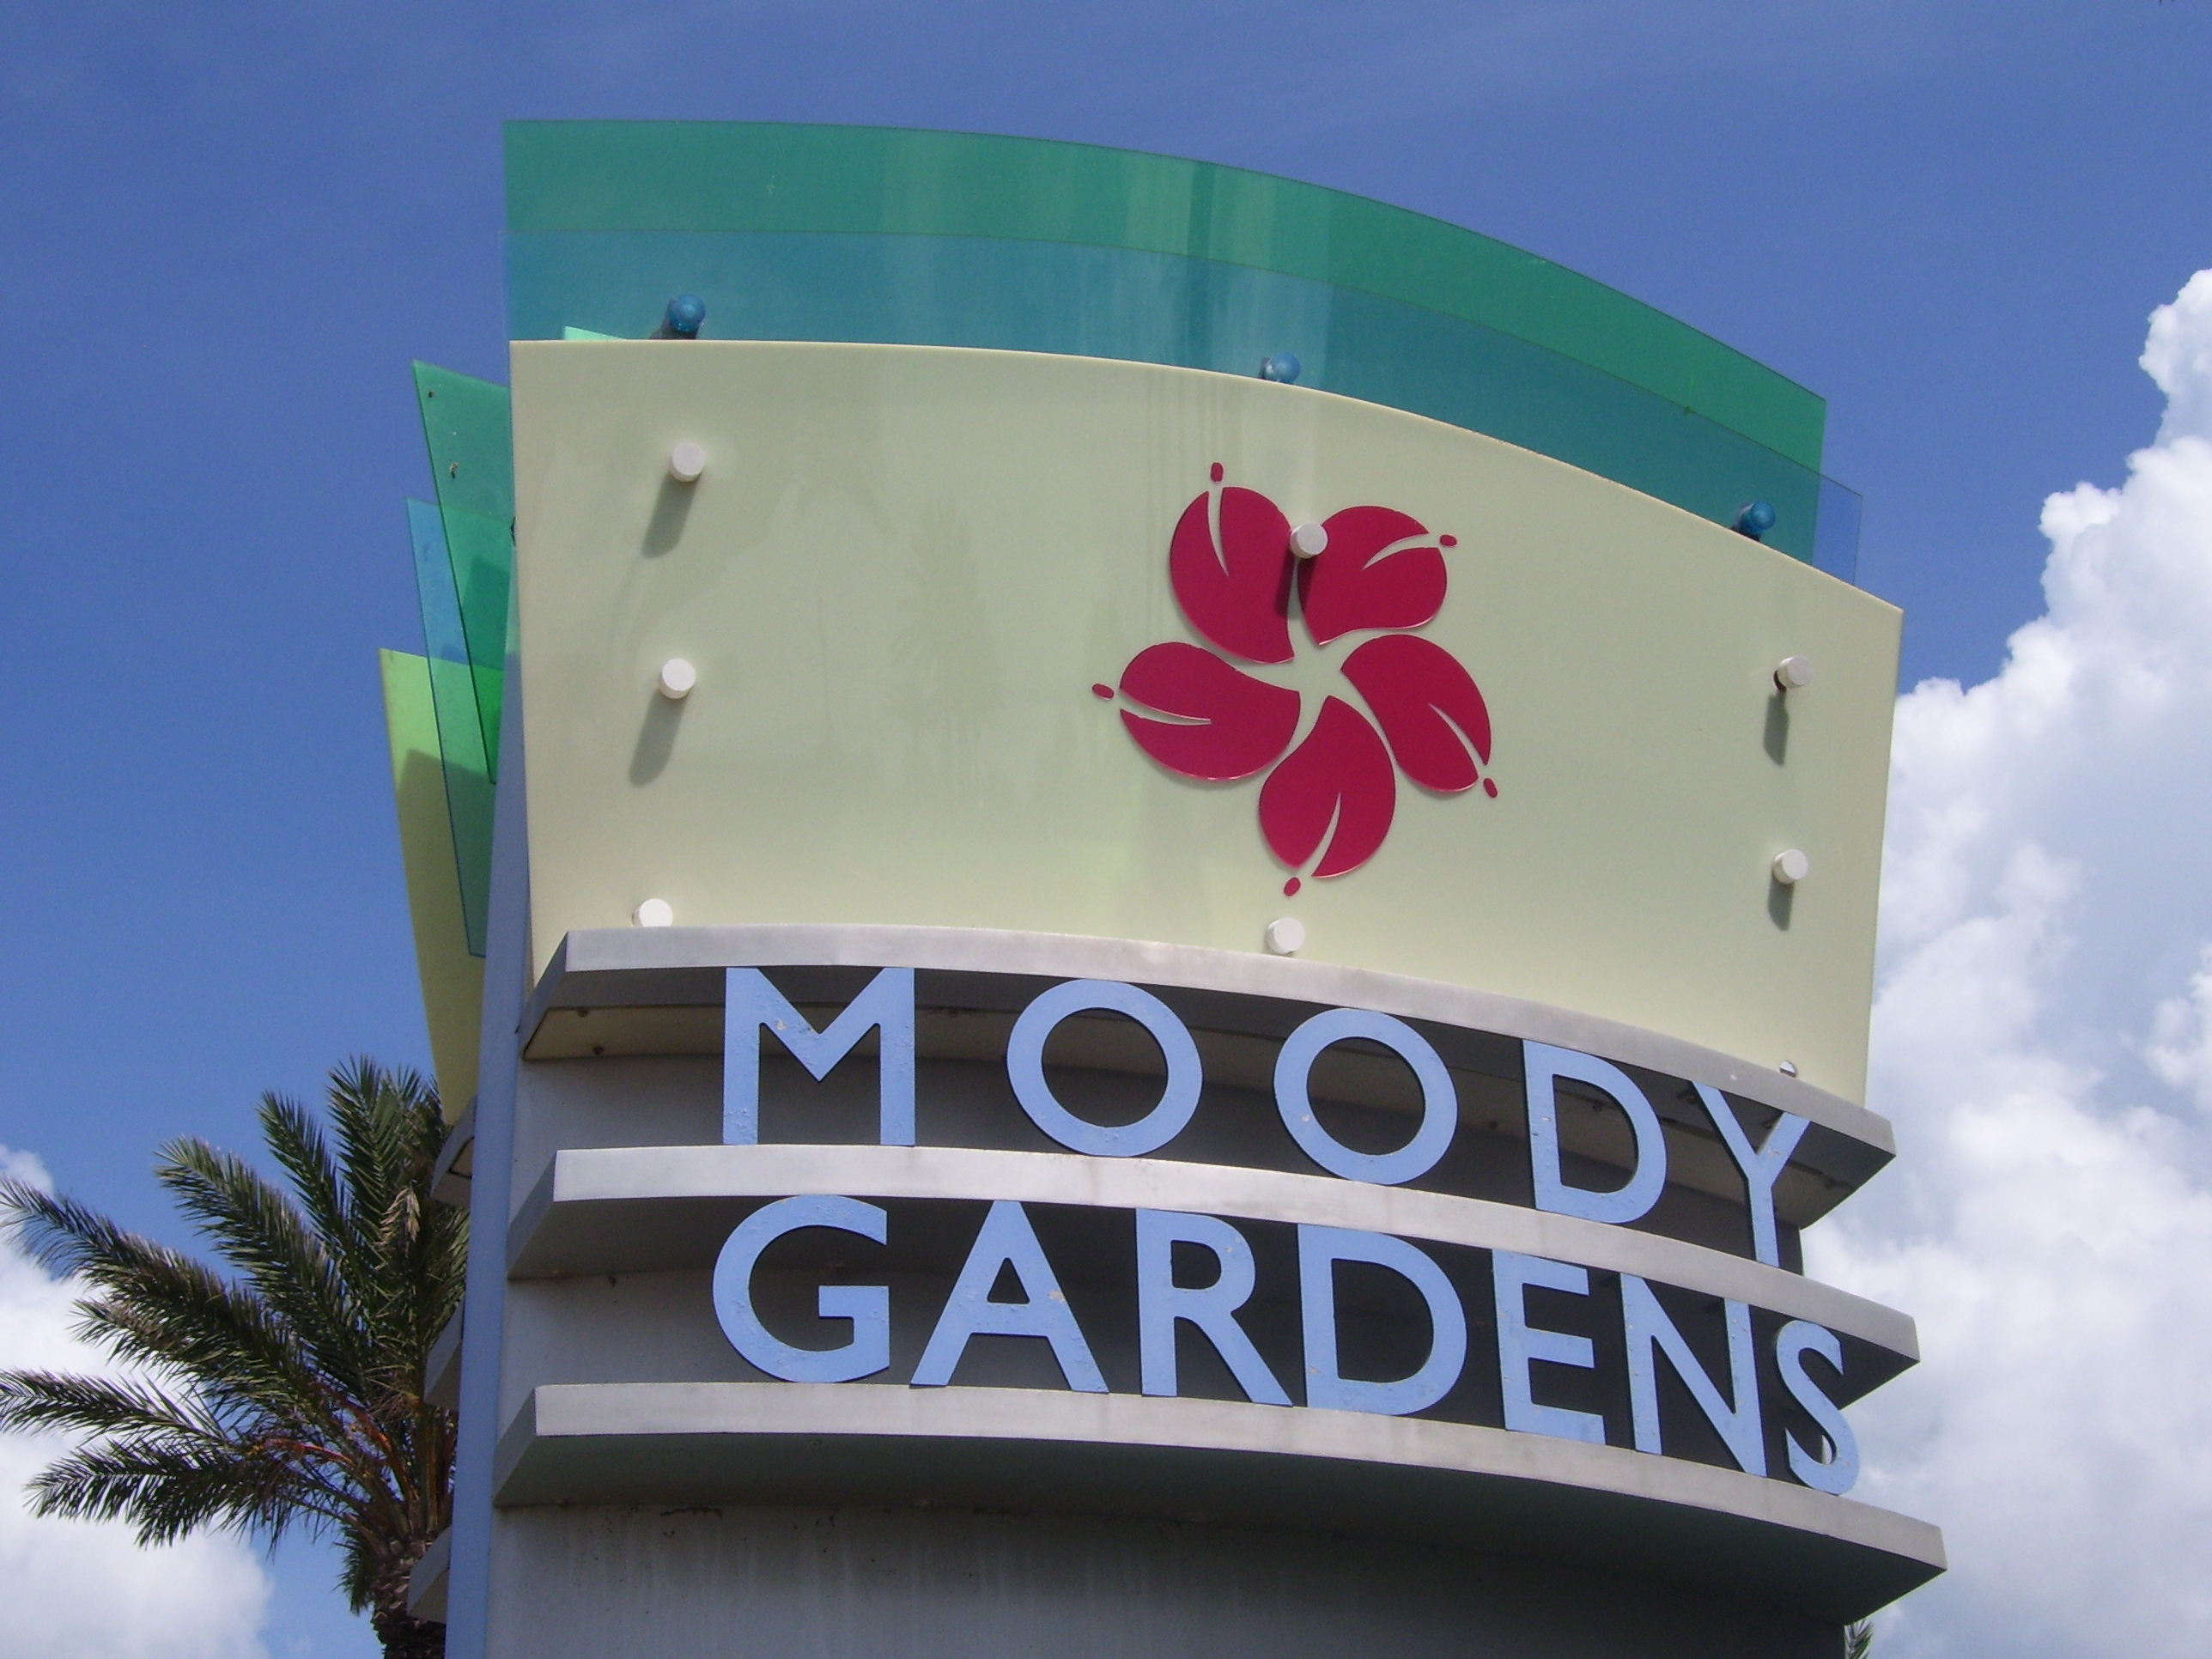 moody gardens | Tim and Jenn's Journey